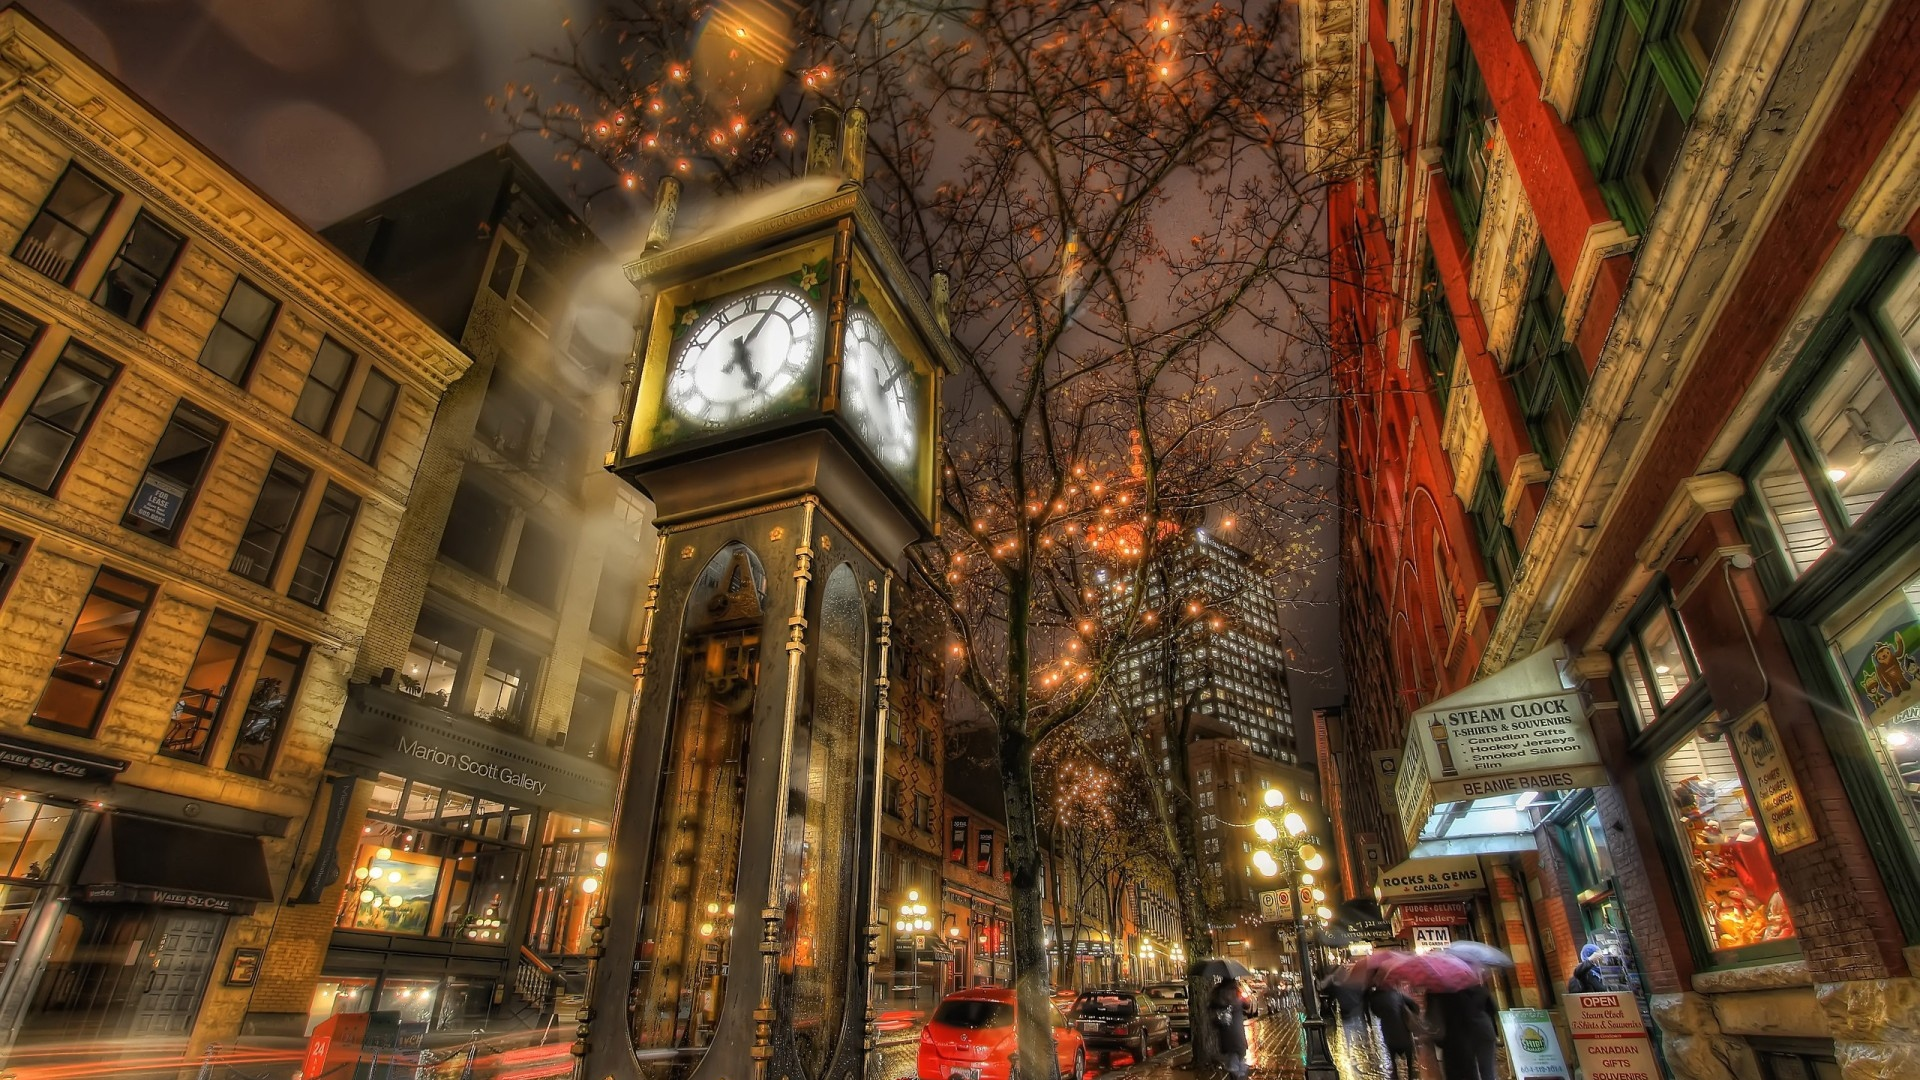 Fantastic Wallpaper Night City Street - city_street_night_watch_walk_hdr_47746_1920x1080  Collection.jpg